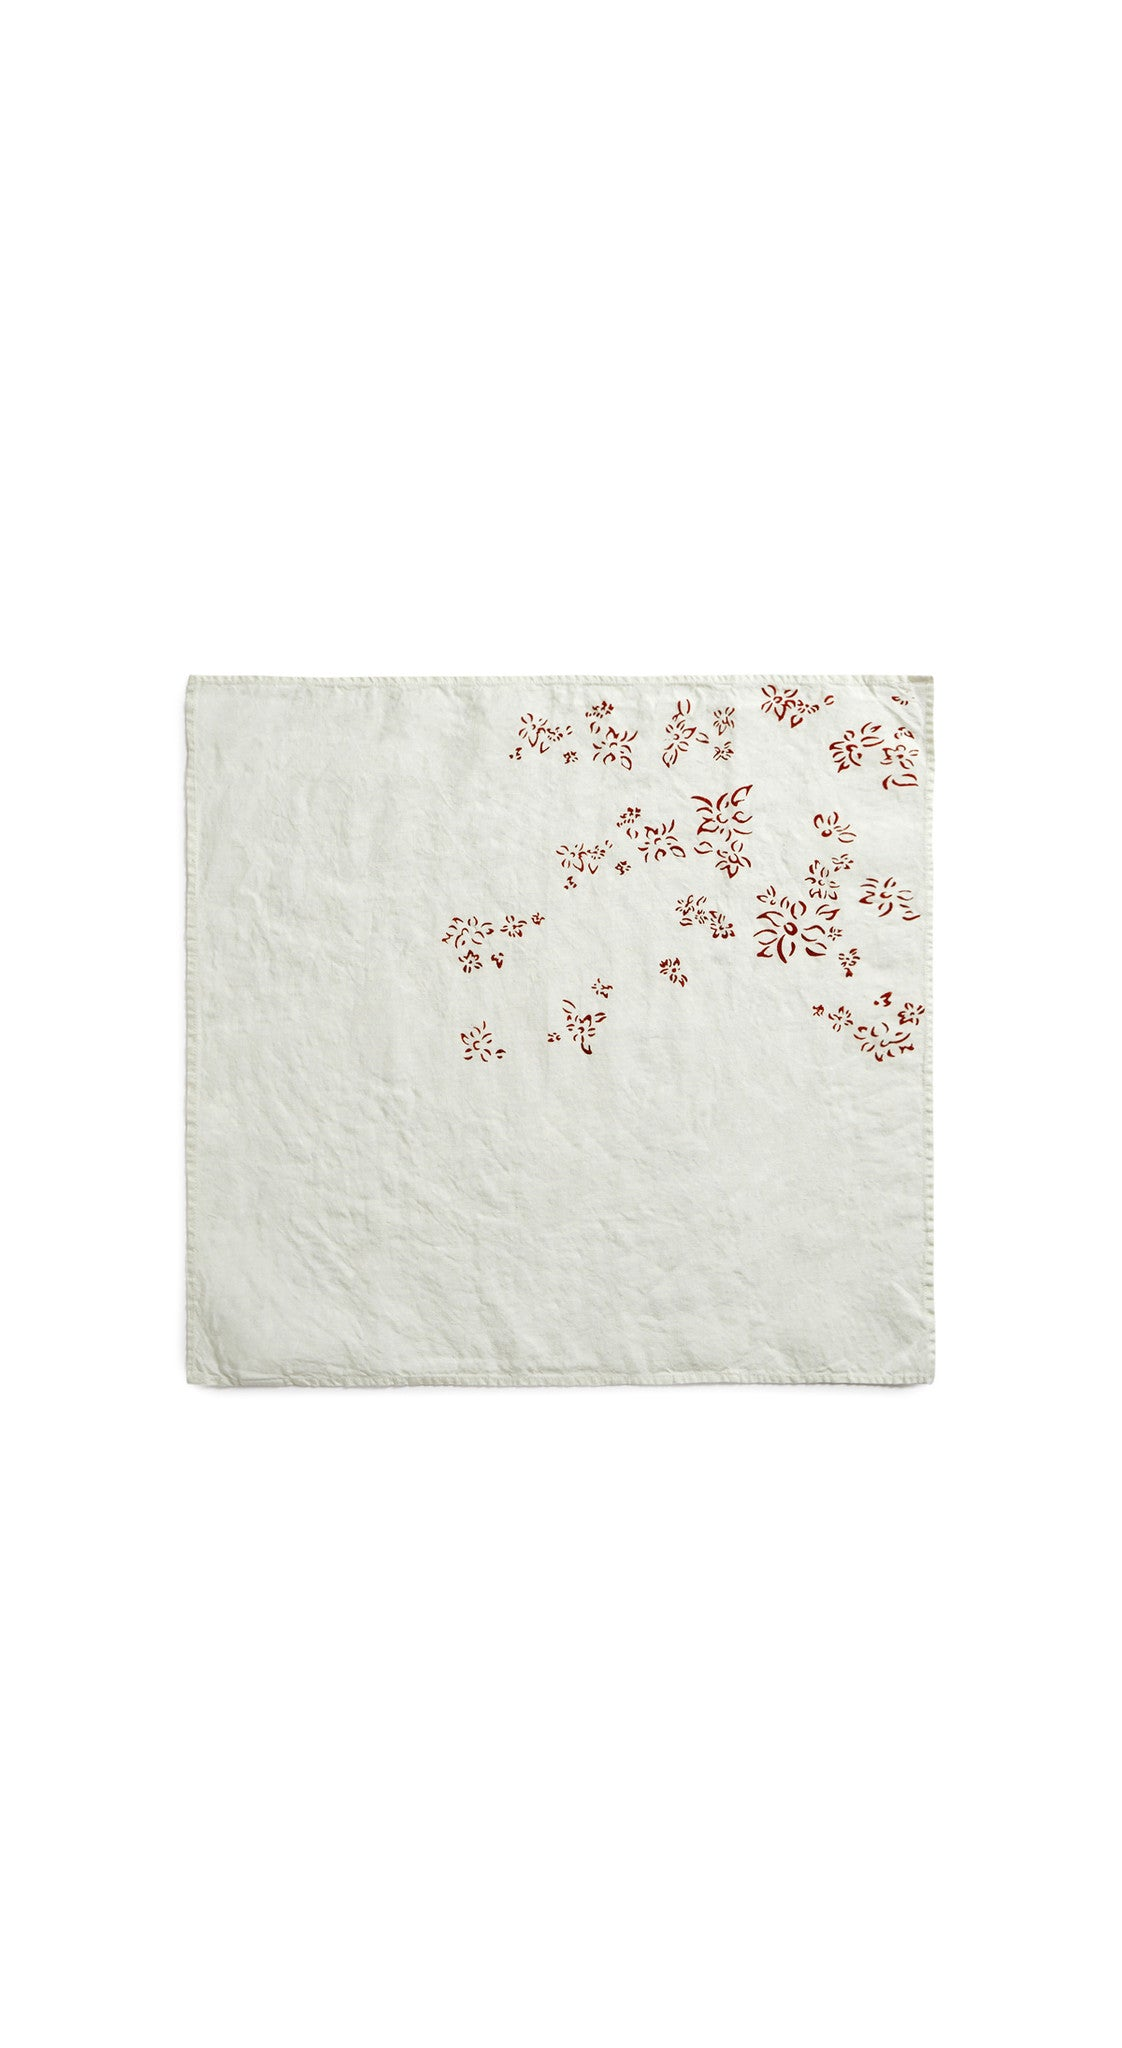 Bernadette's Hand Stamped Falling Flower Linen Napkin in Rust Red